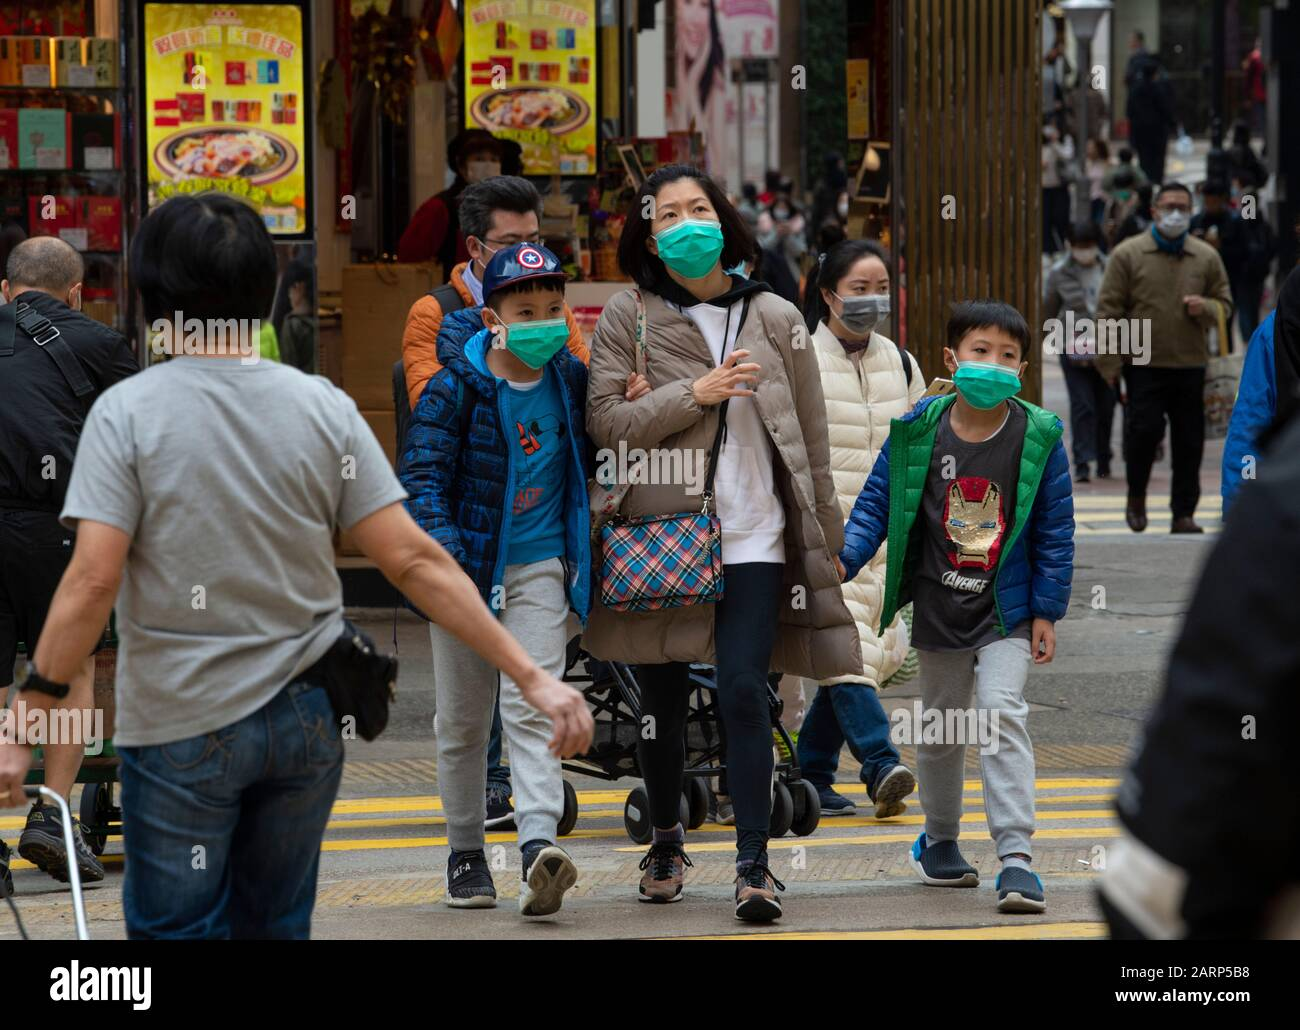 Hong Kong, China. 29th Jan, 2020. Fear of the 2019 Novel Coronavirus from Wuhan China is evident on the streets of Hong Kong. The majority of the people don surgical masks before venturing out Credit: Jayne Russell/Alamy Live News Stock Photo